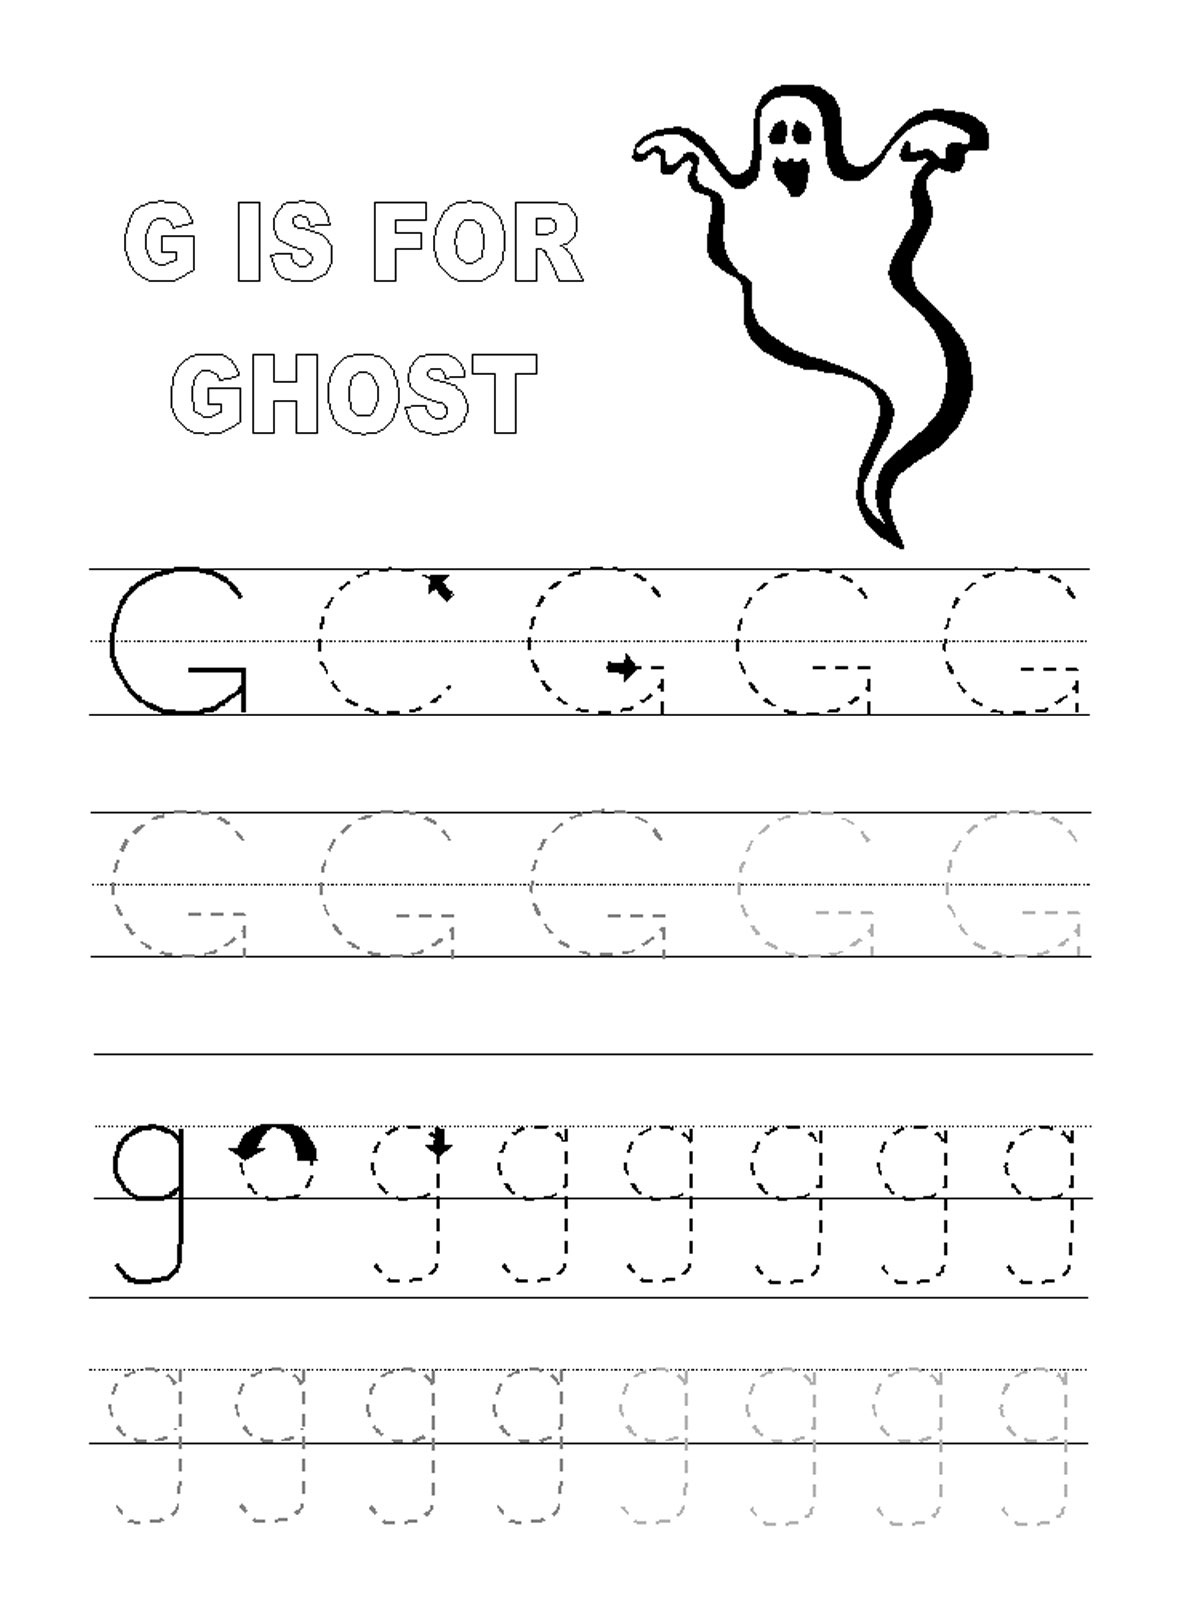 free-traceable-alphabet-worksheets-letter-g